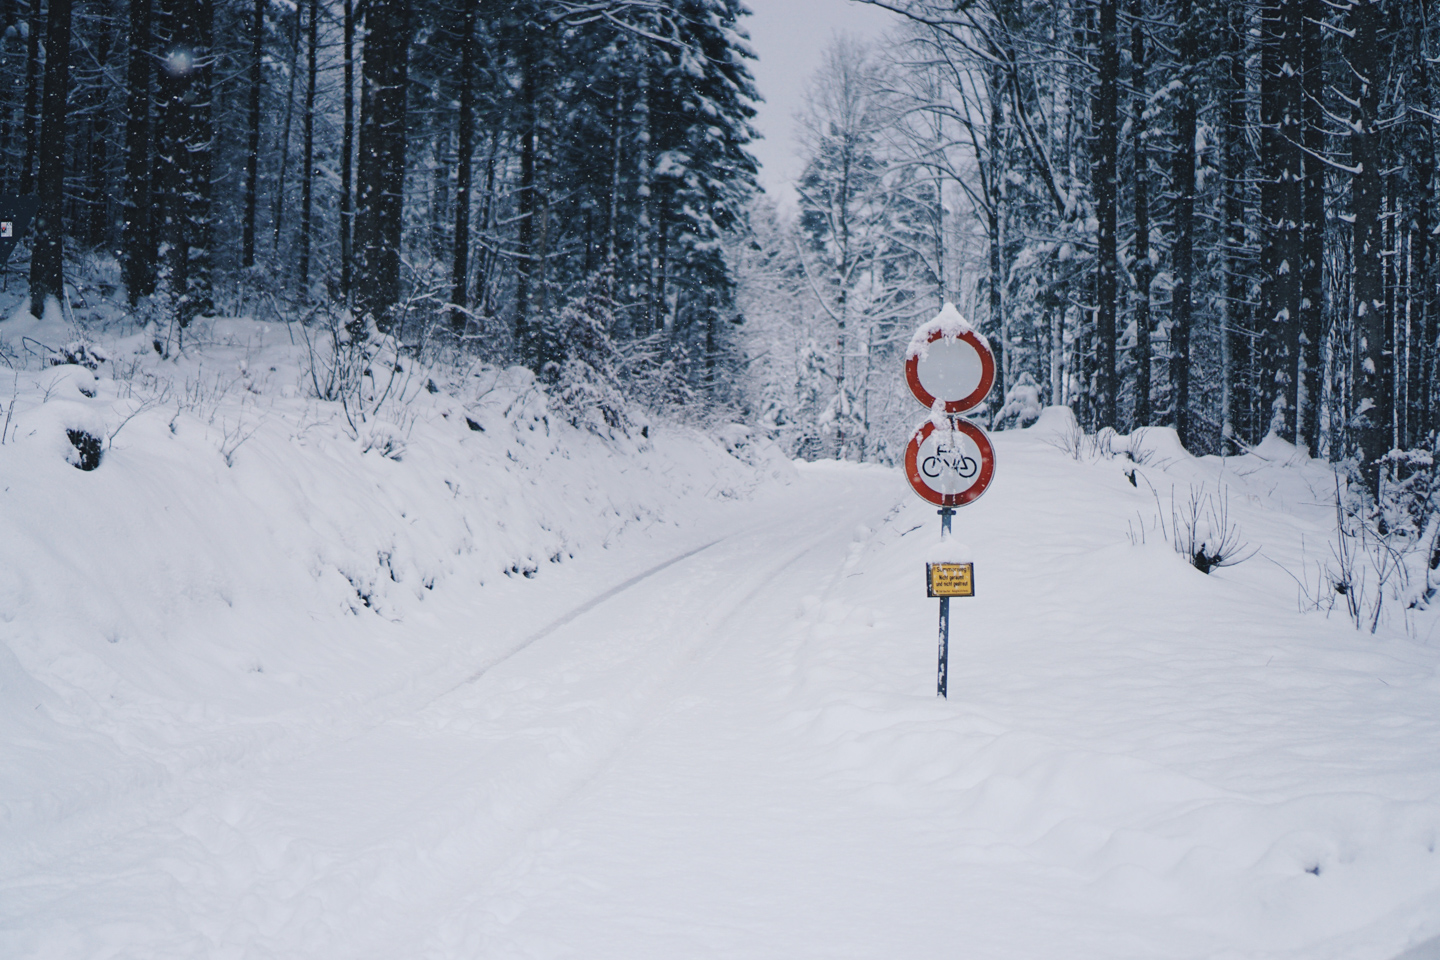 Driving In Germany During The Winter Months Suganth 2Vg3Idf8Whm Unsplash